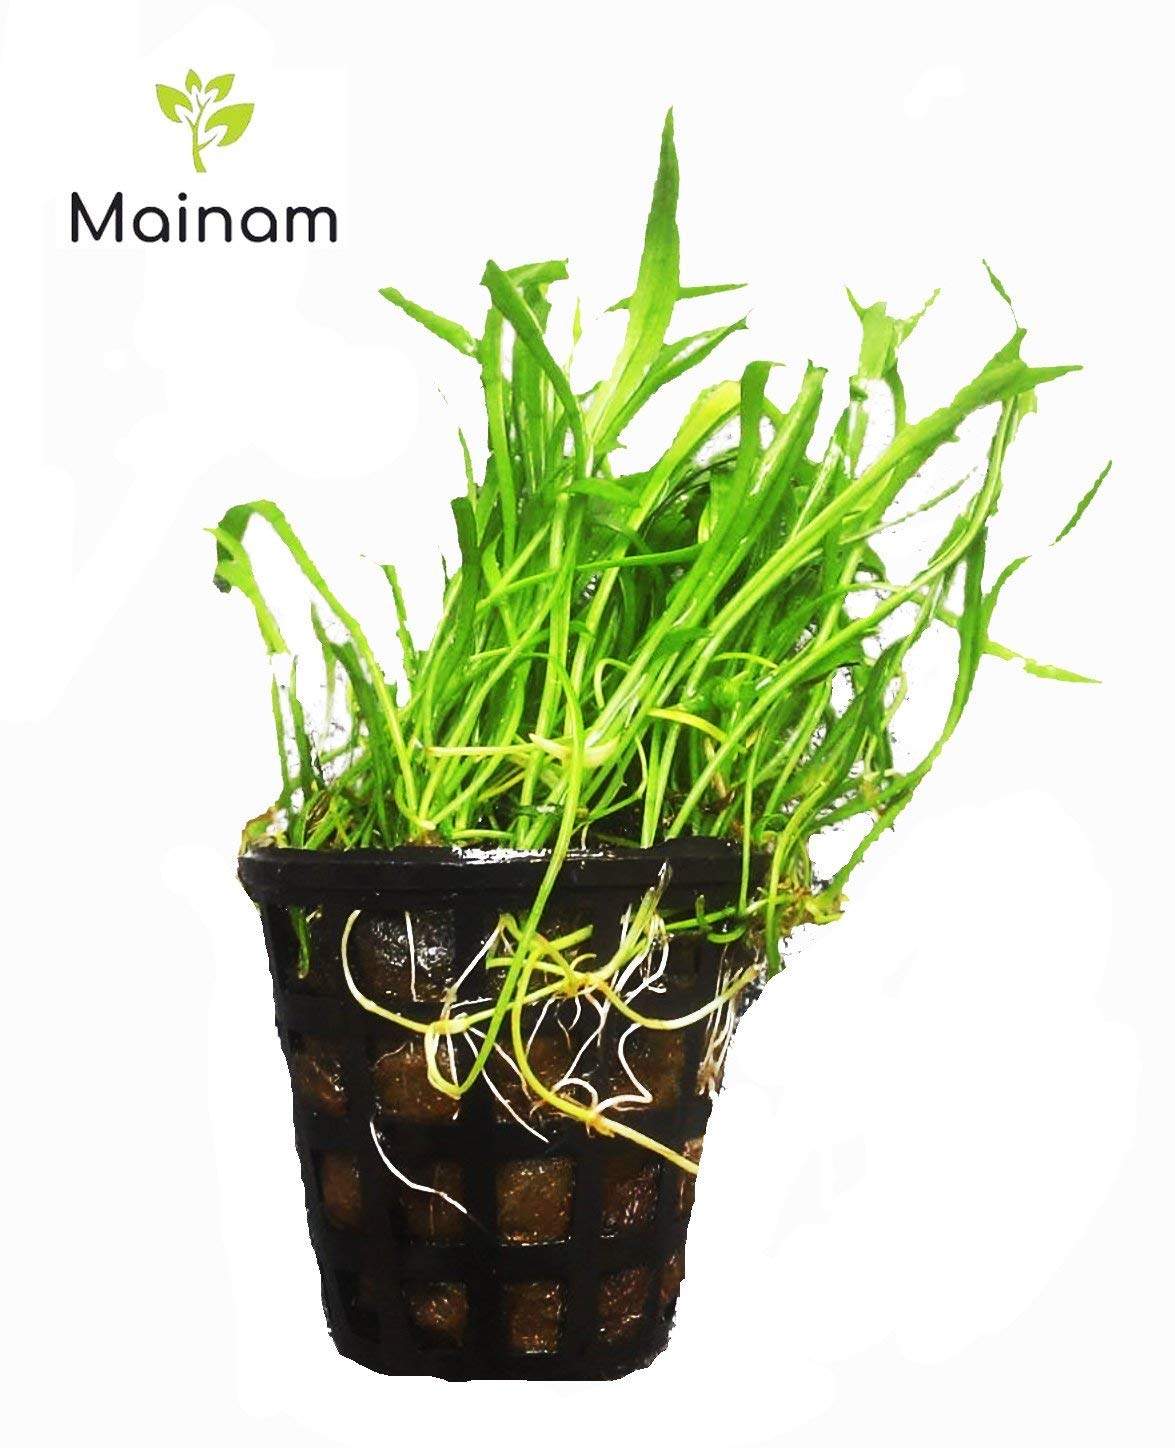 Mainam Lilaeopsis novaezelandiae Micro Sword Copragrass Narrow Leaf Potted Live Aquarium Plant for Aquatic Freshwater Fish Tank Decoration 3 DAYS LIVE GUARANTEED By